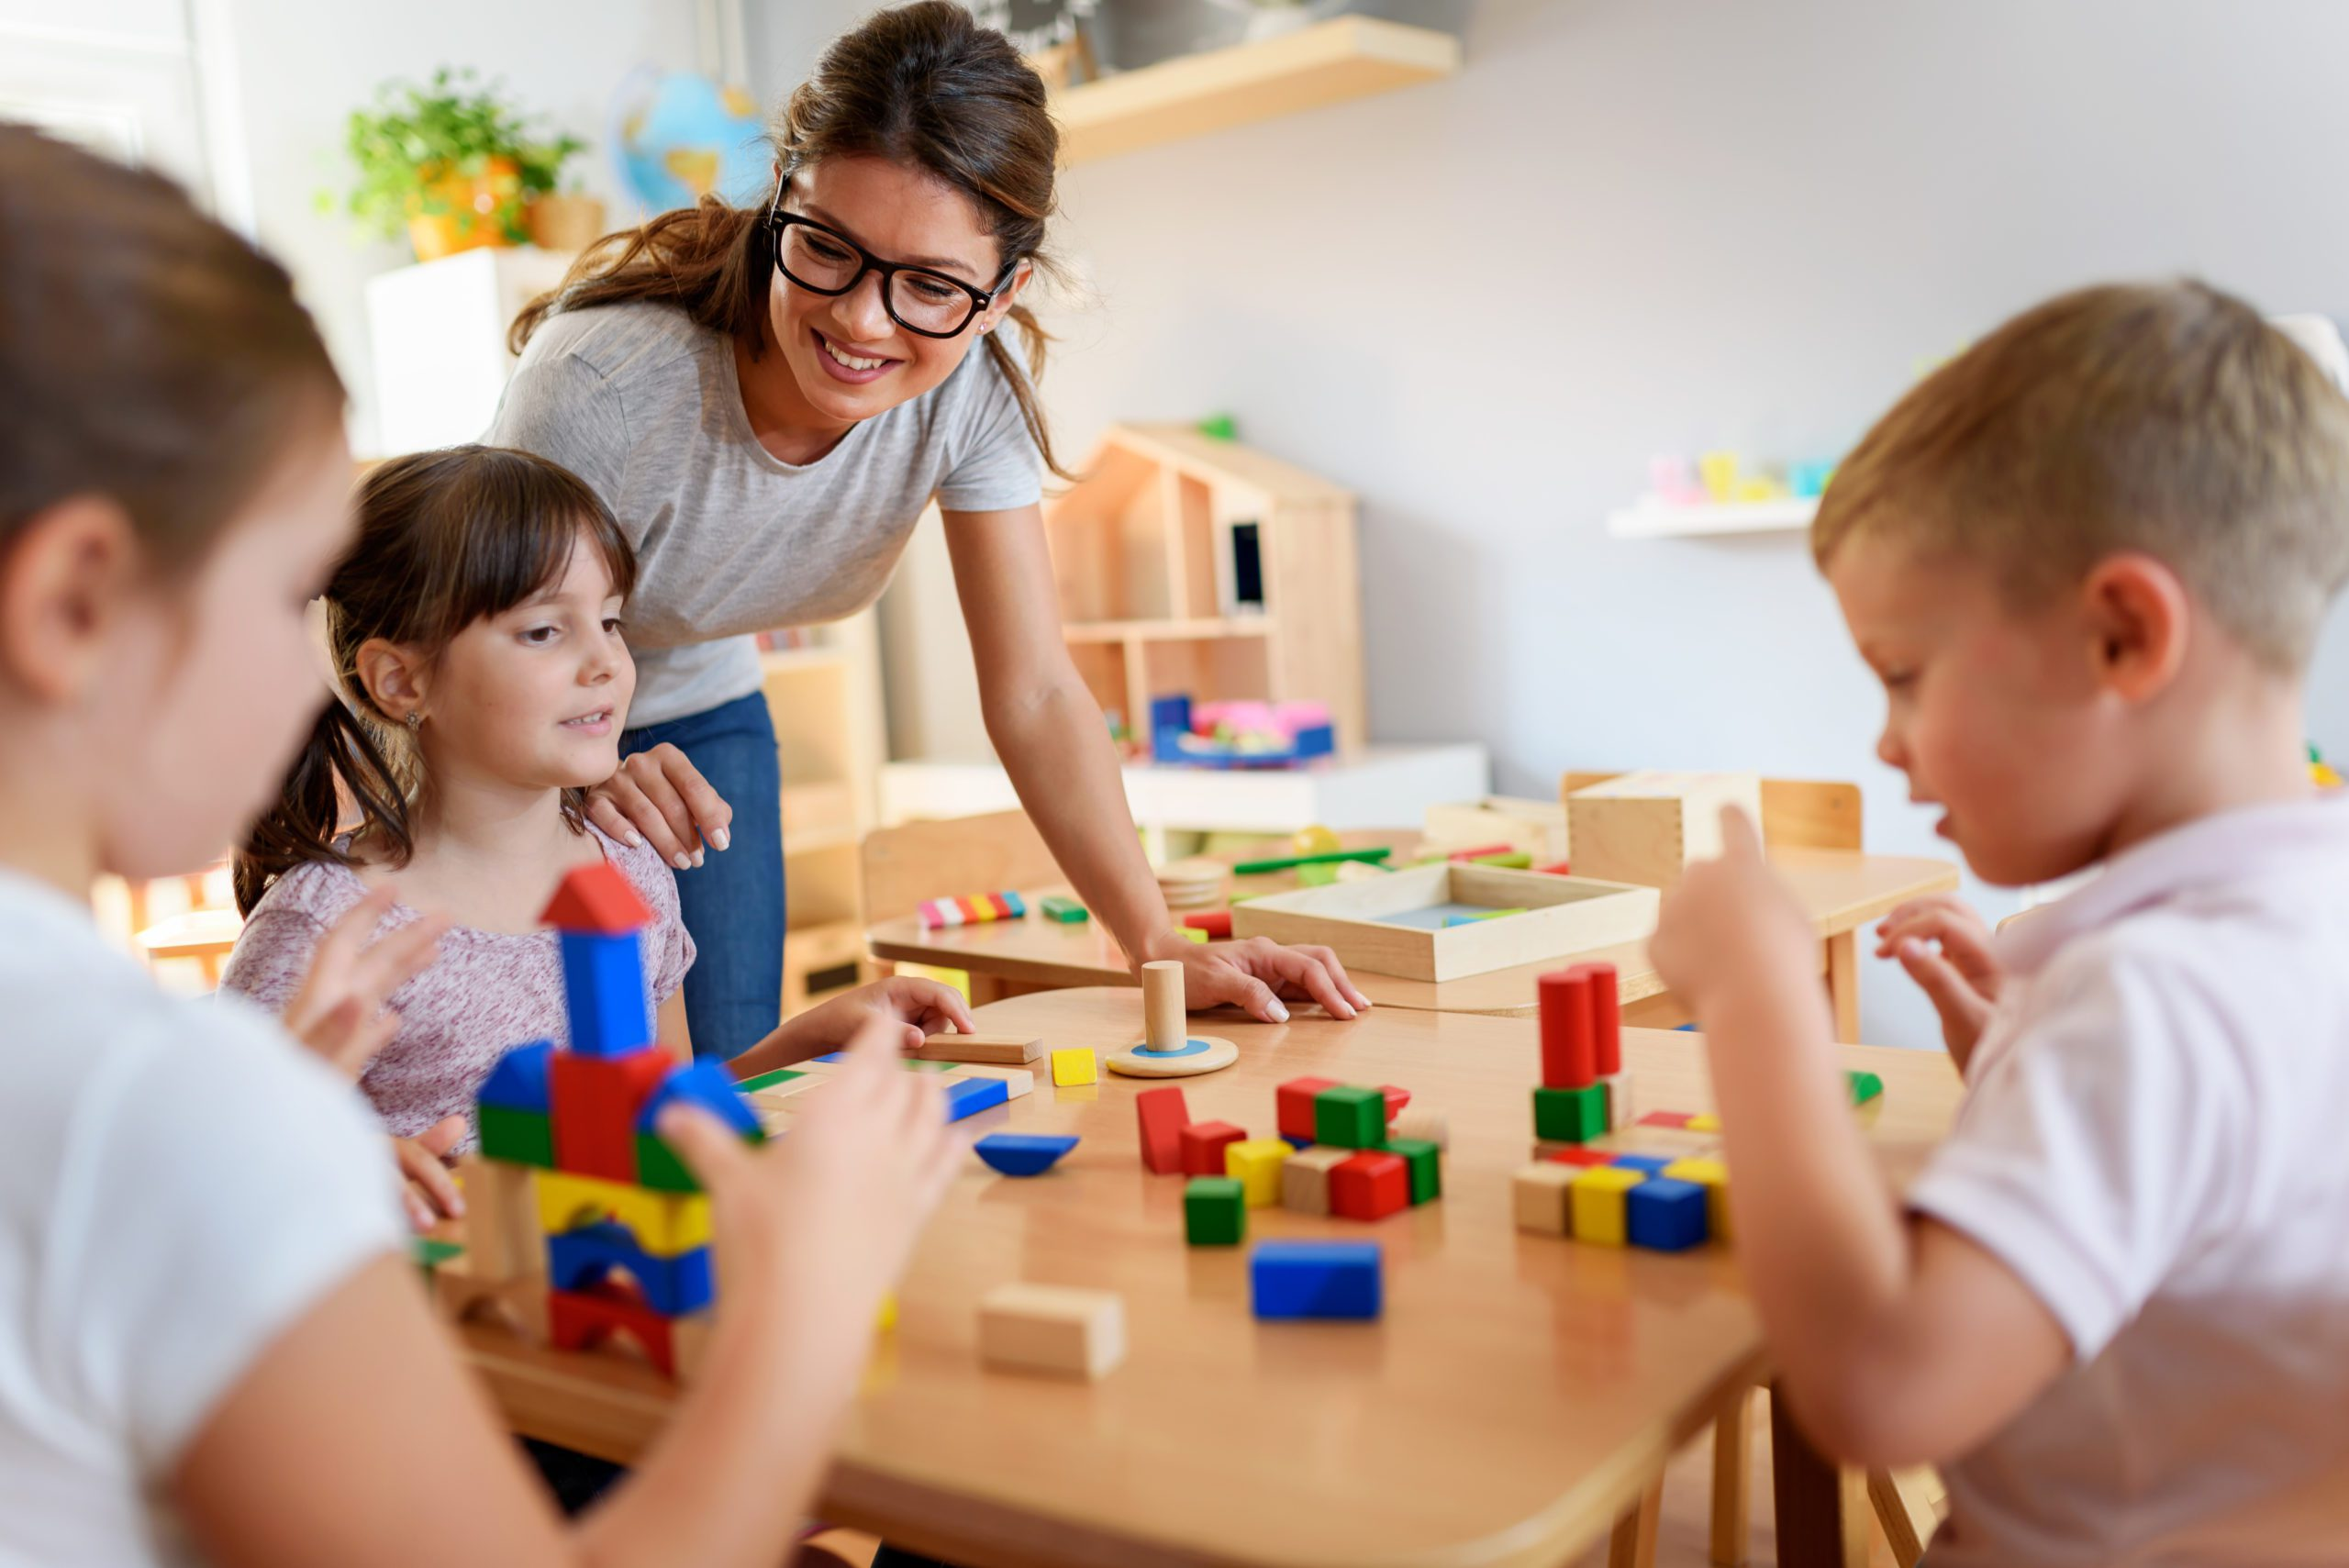 Top Tips For Preparing Your Child For Preschool